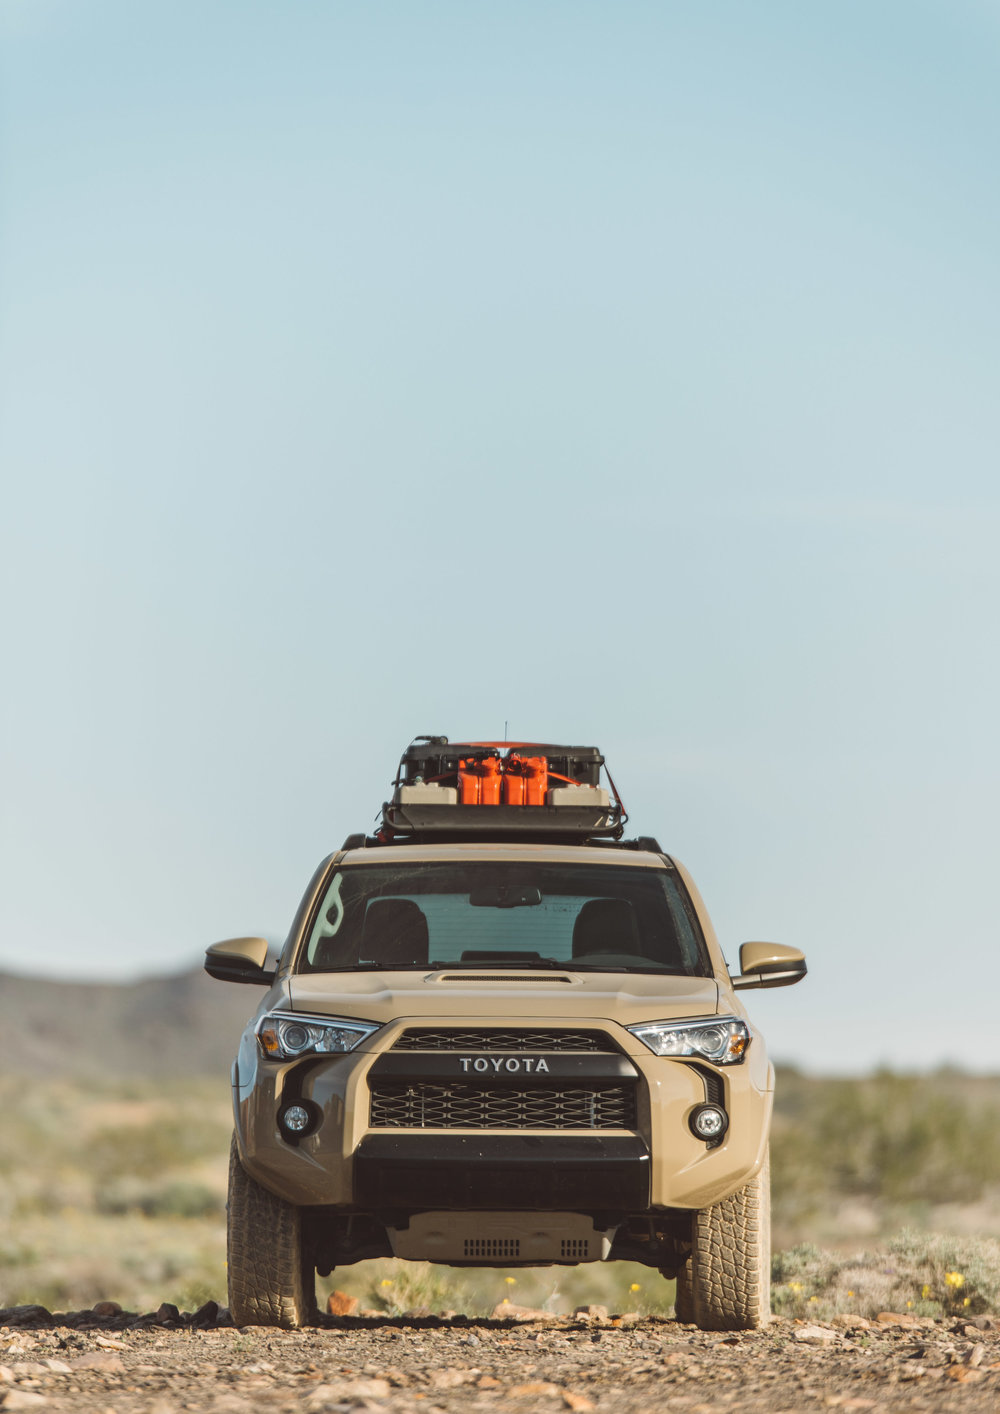 joshua-tree-toyota-4runner-t4r-tacoma-world